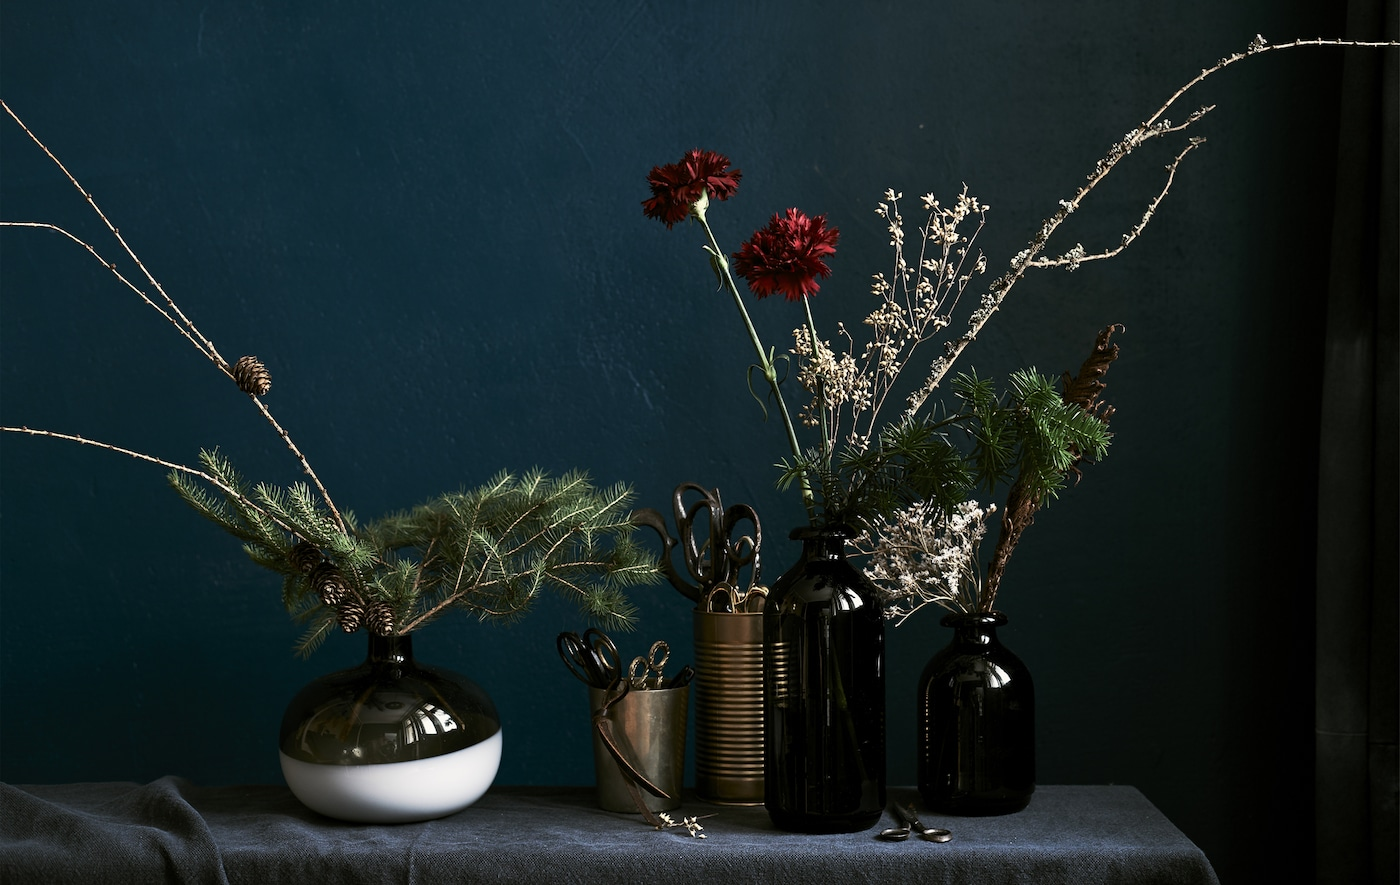 Flower presentations in vases of different sizes against a dark background.